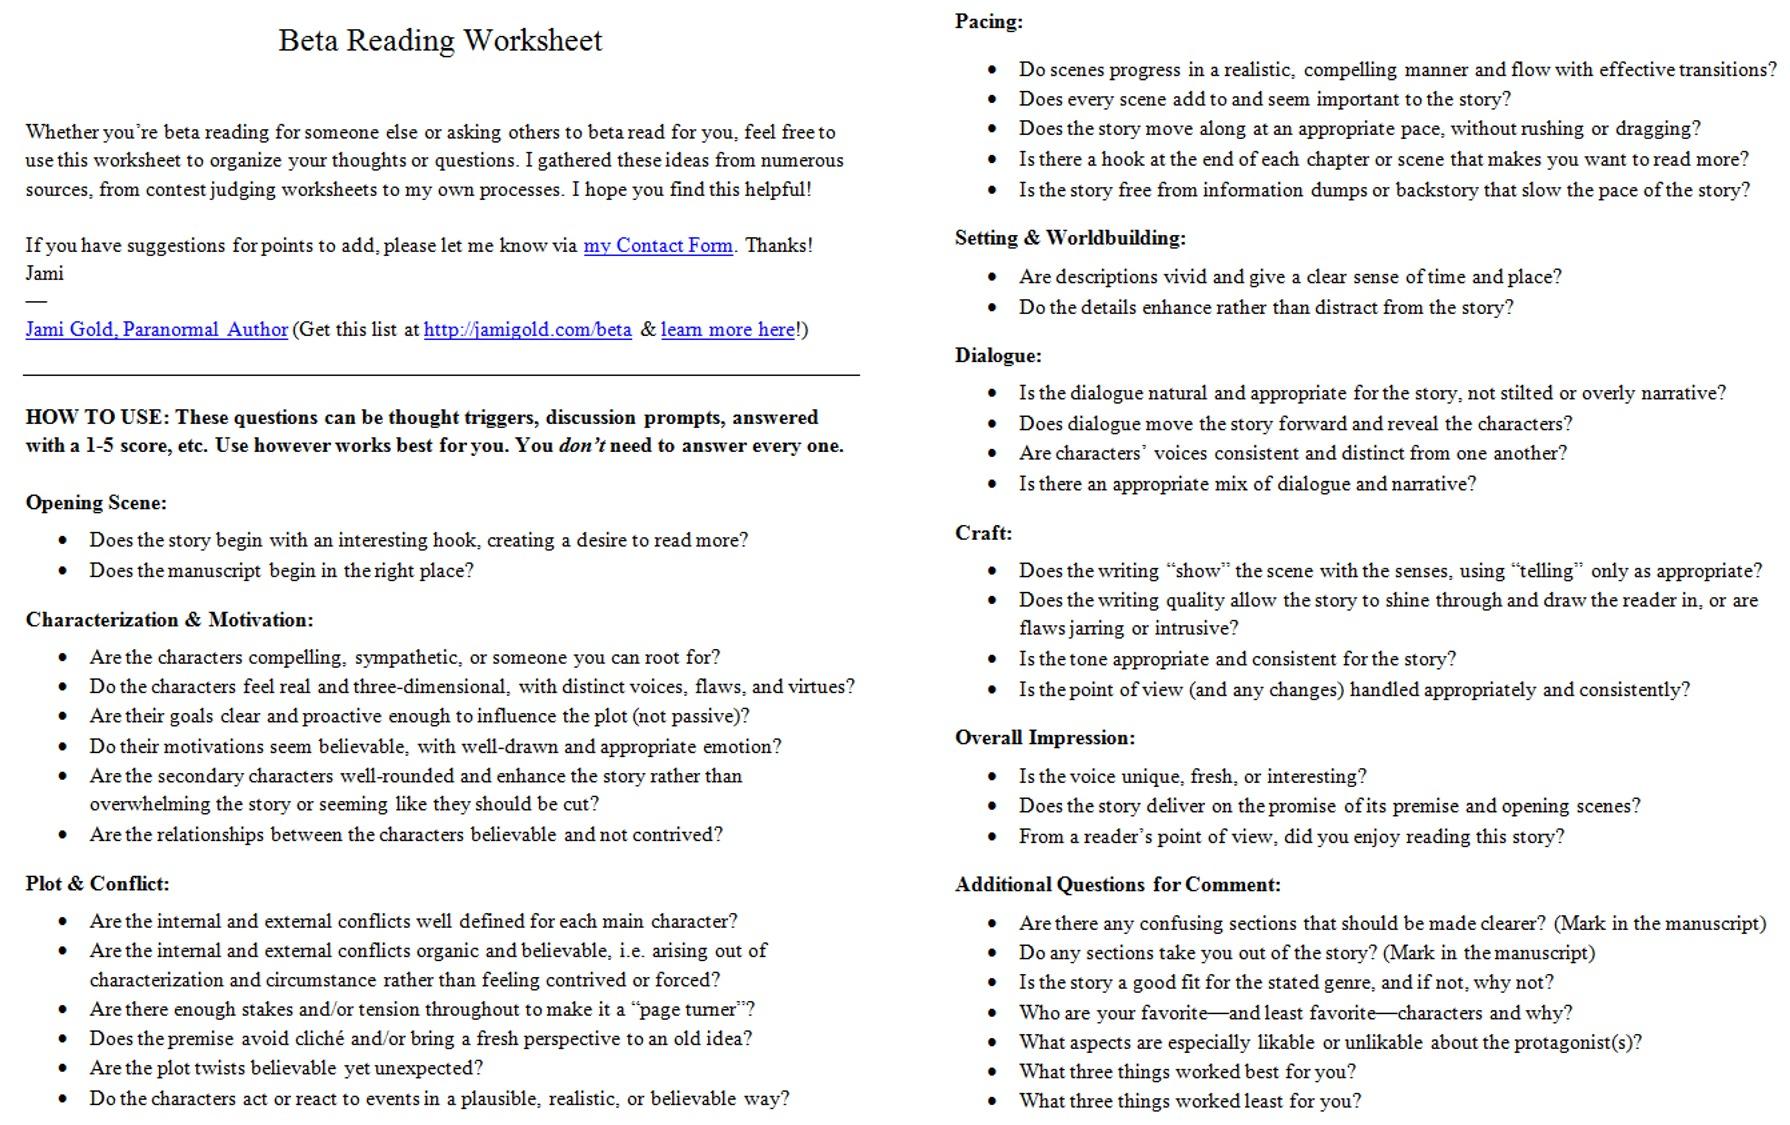 Proatmealus  Marvellous Worksheets For Writers  Jami Gold Paranormal Author With Outstanding Screen Shot Of The Twopage Beta Reading Worksheet With Astonishing Dependent And Independent Variable Worksheet Also Multiplication Times Tables Worksheets In Addition Inferencing Worksheets Rd Grade And Free Suffix Worksheets As Well As Types Of Government Worksheets Additionally Graphing Acceleration Worksheet From Jamigoldcom With Proatmealus  Outstanding Worksheets For Writers  Jami Gold Paranormal Author With Astonishing Screen Shot Of The Twopage Beta Reading Worksheet And Marvellous Dependent And Independent Variable Worksheet Also Multiplication Times Tables Worksheets In Addition Inferencing Worksheets Rd Grade From Jamigoldcom